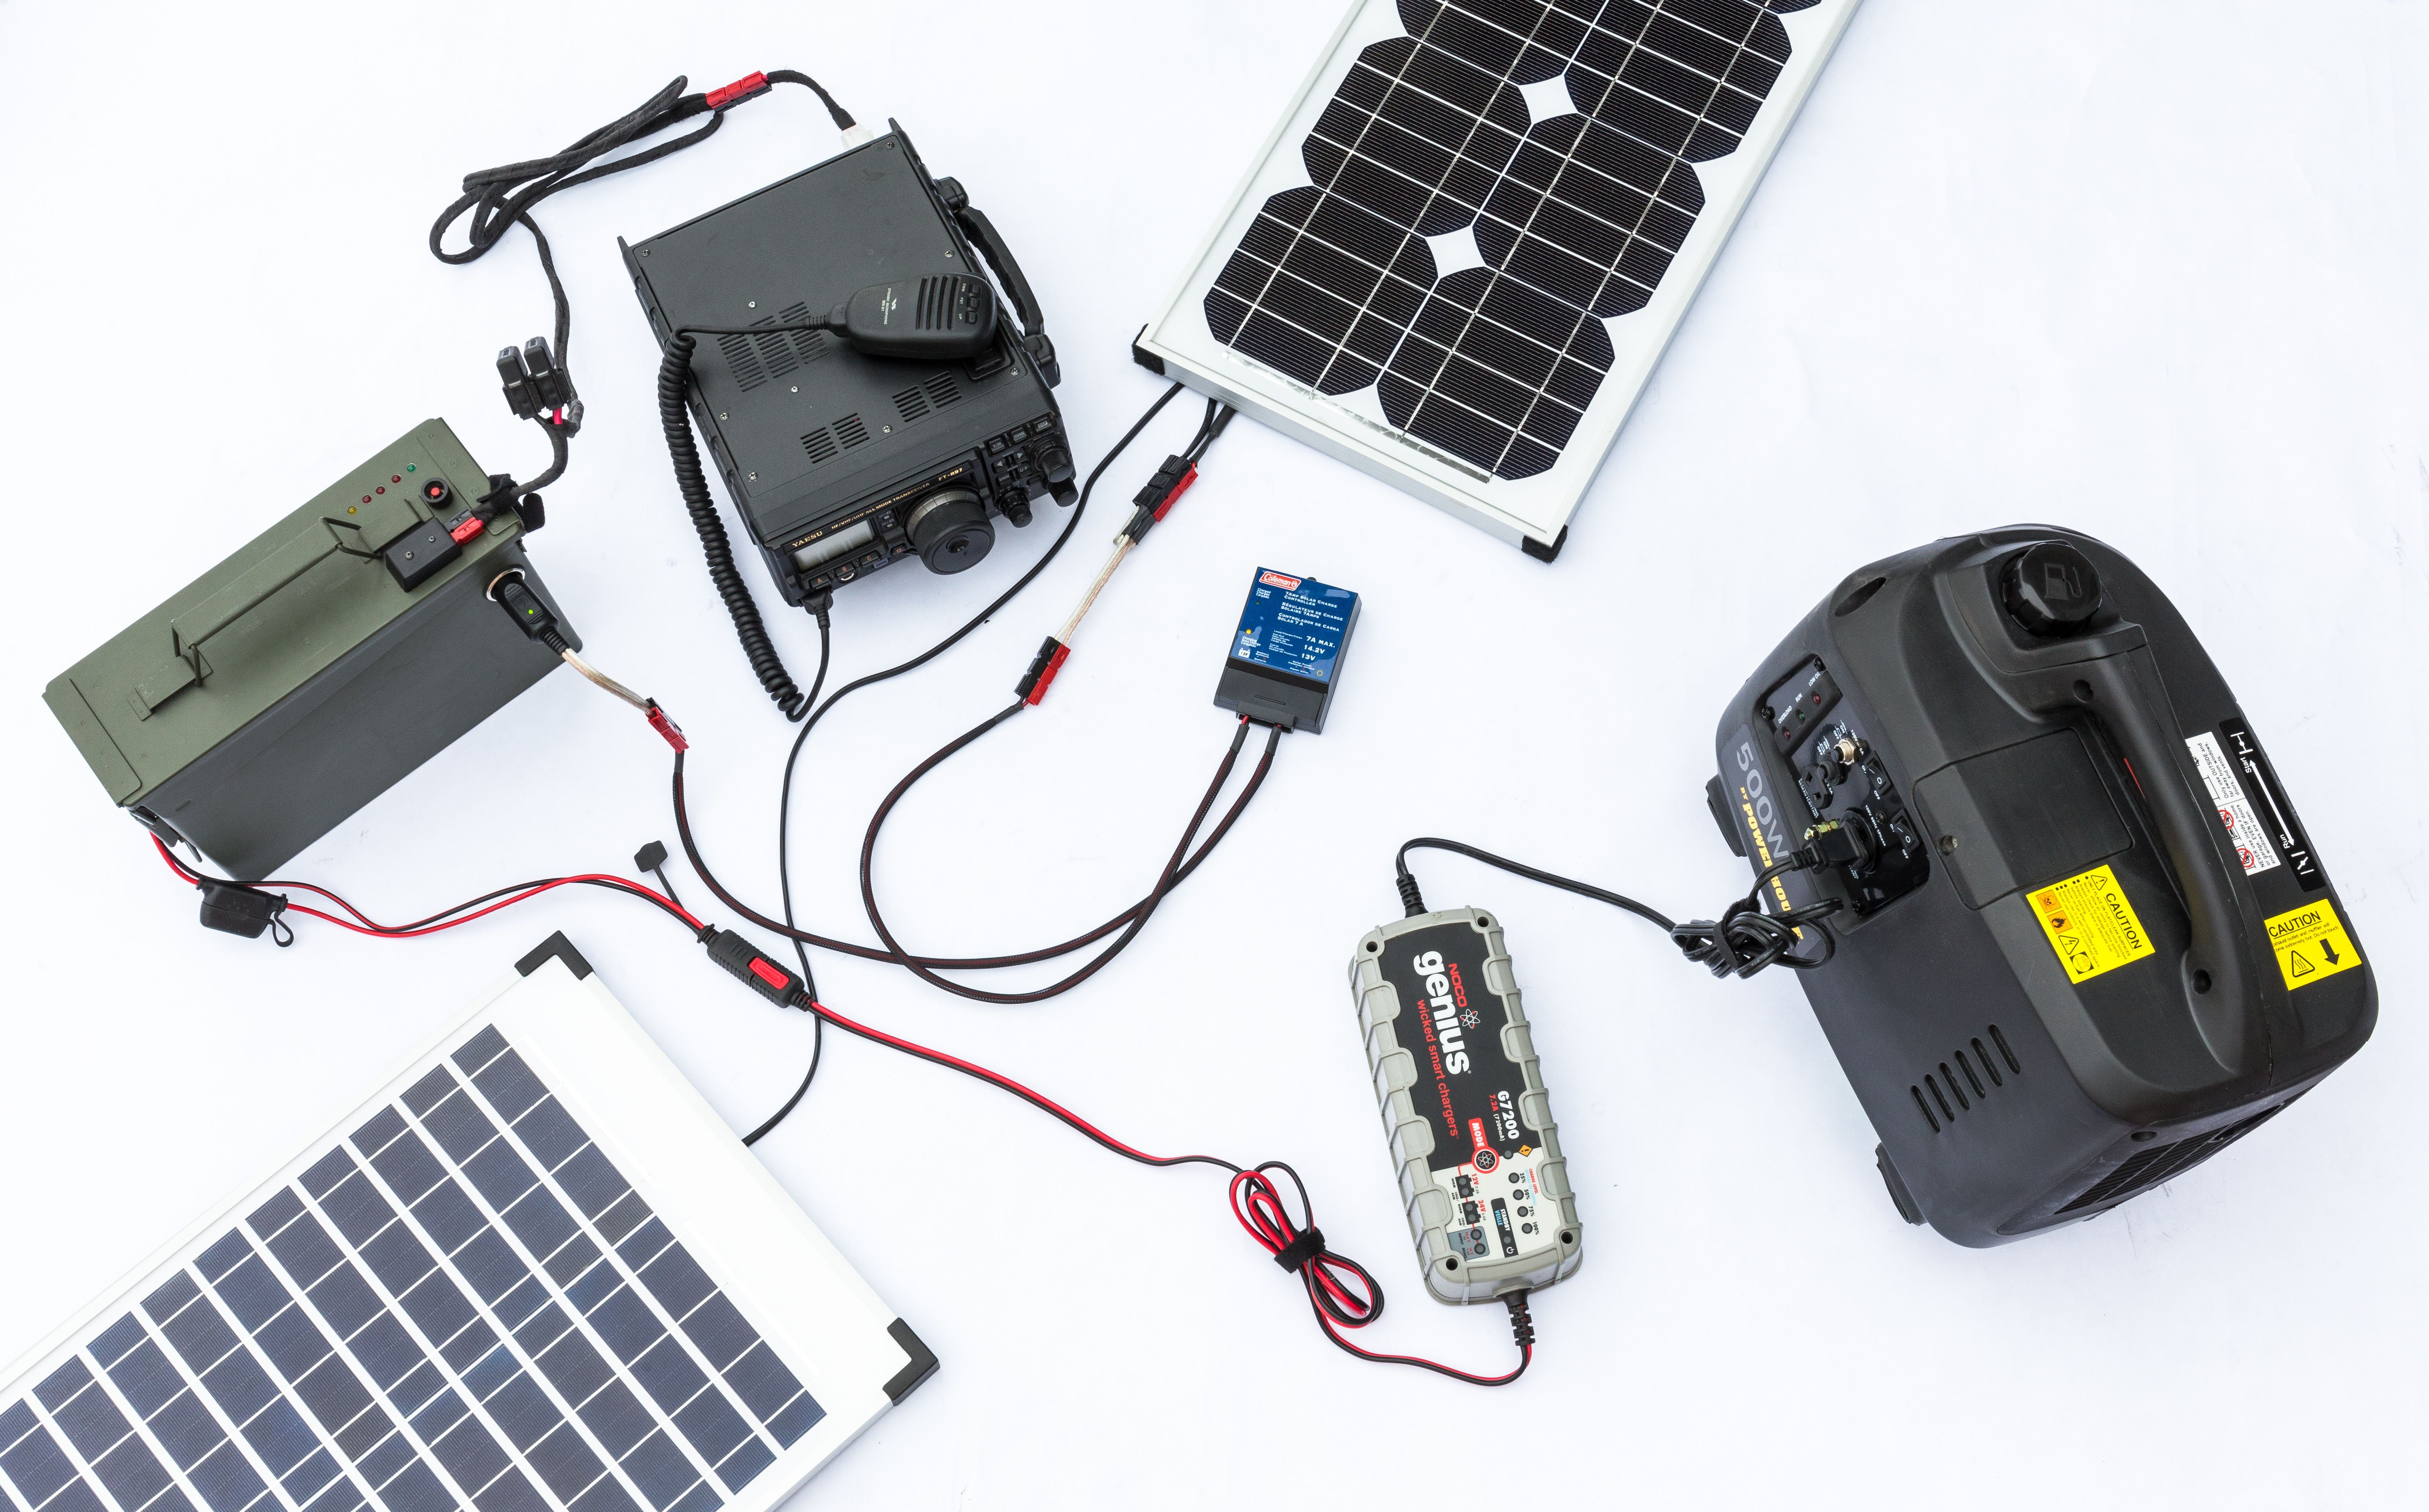 Ham Radio Devices That Work Together When Set Up For Field Operations The Yaesu Ft 897d Two 40 Watt Solar Panels Daisy C Solar Panel Cost Solar Charger Solar